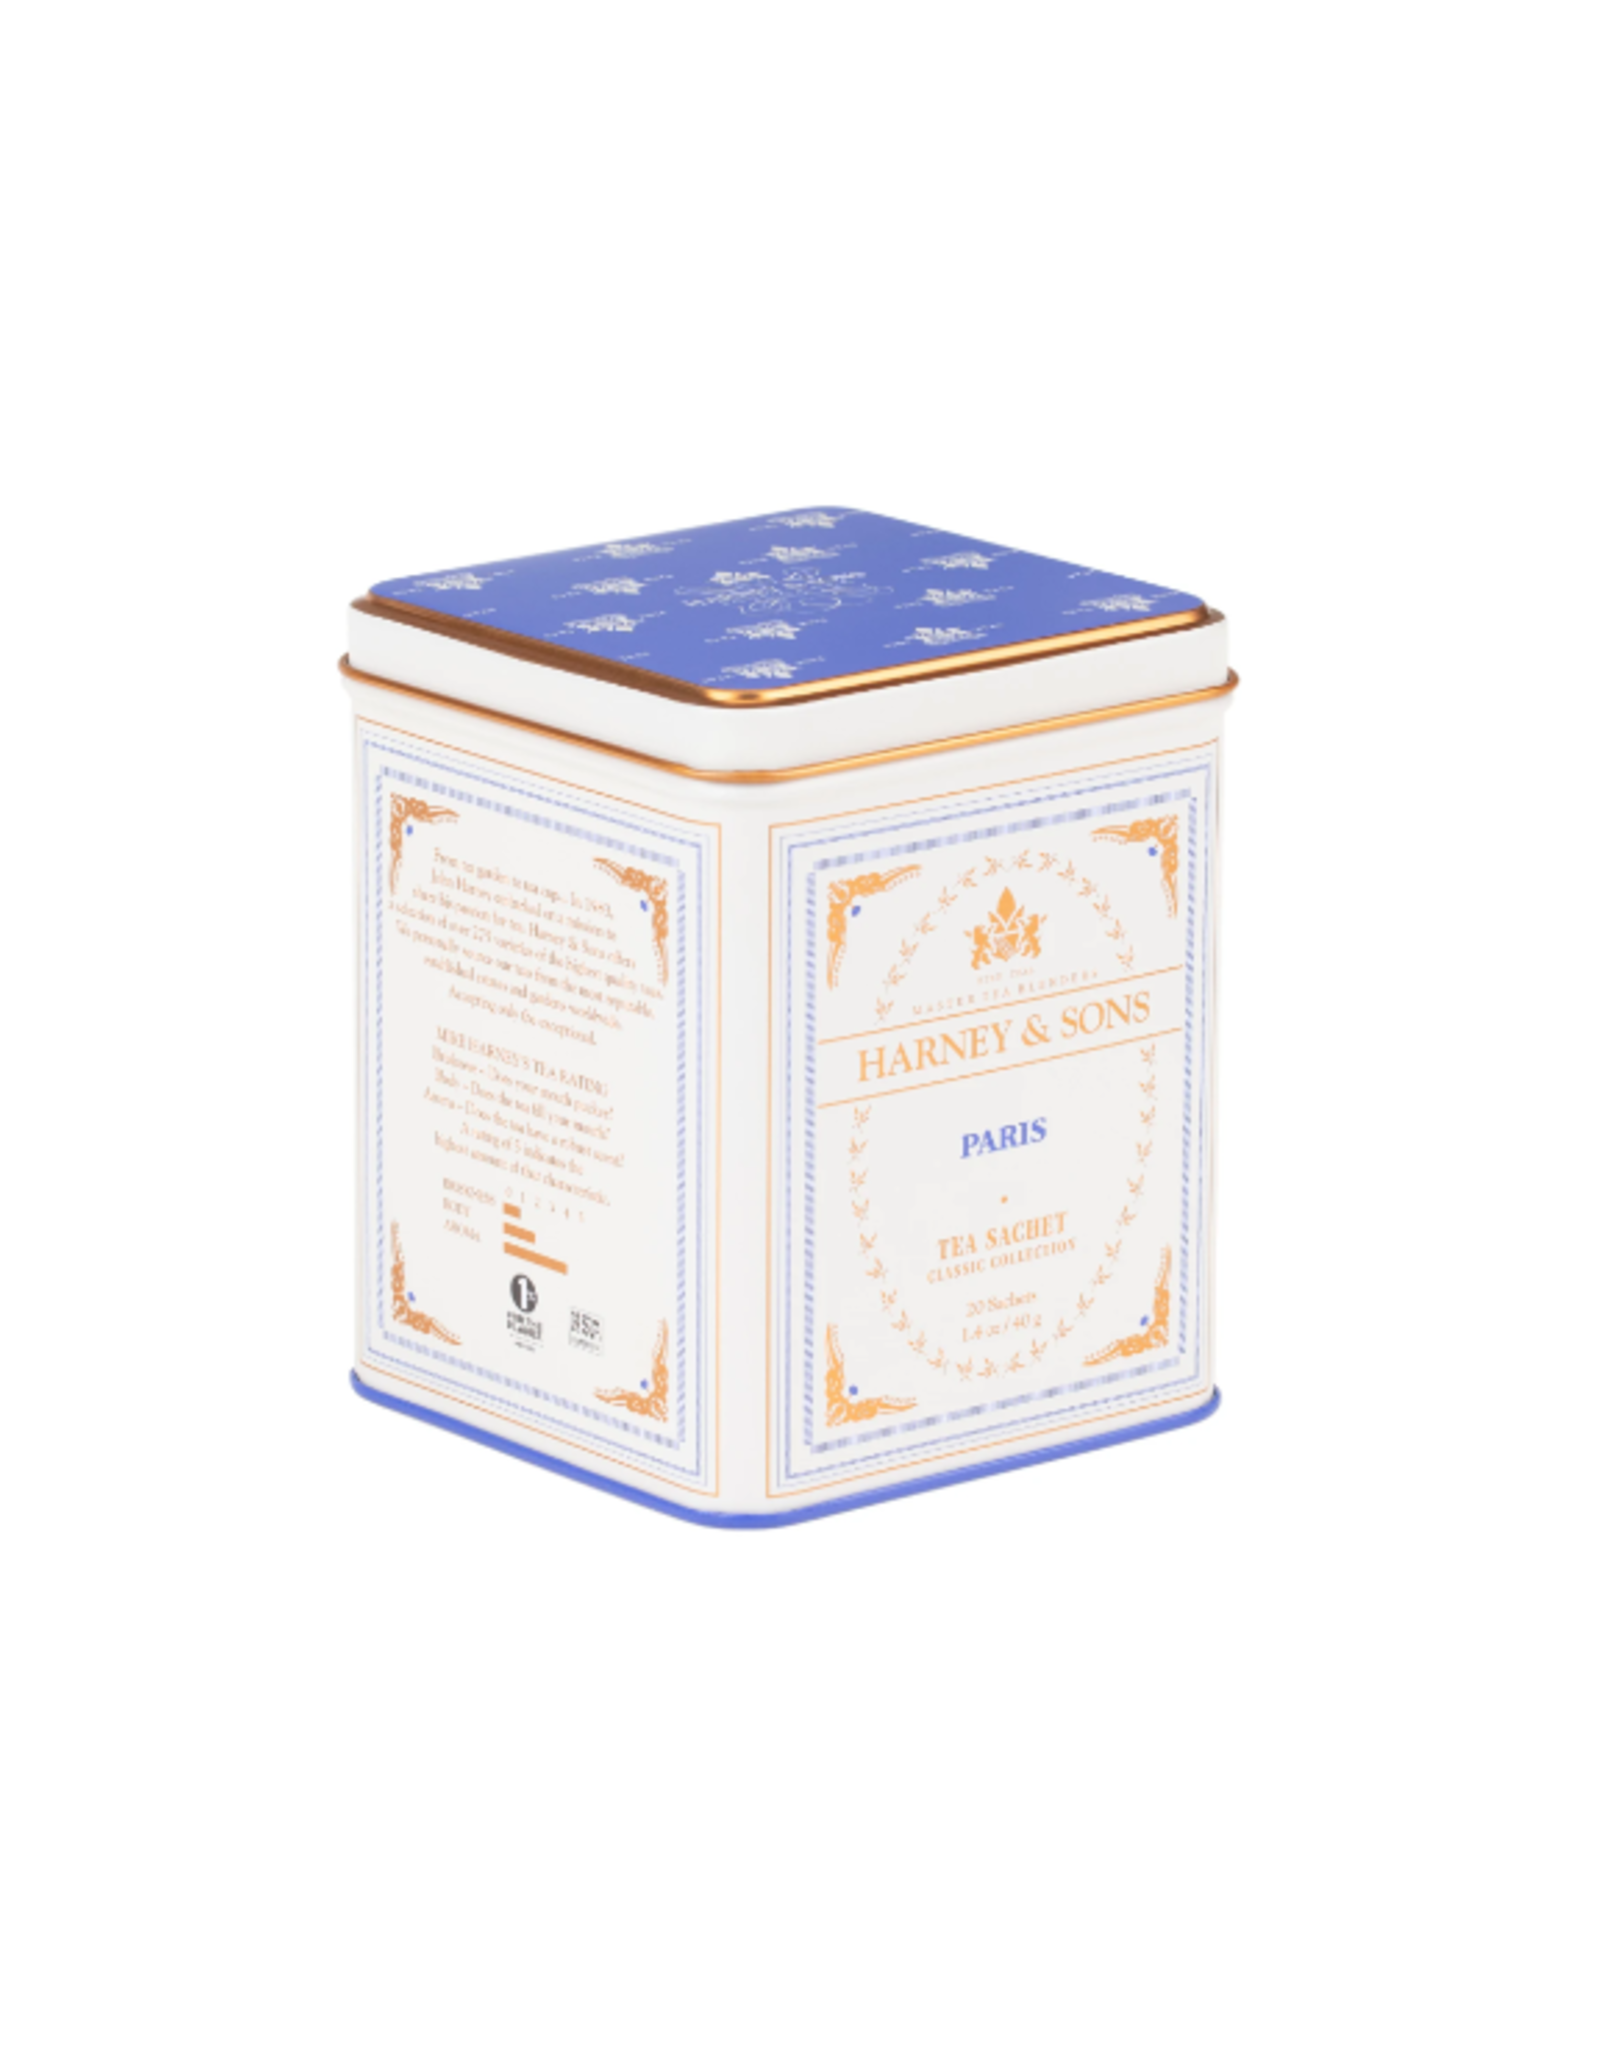 Harney & Sons Paris Black Tea, Tin